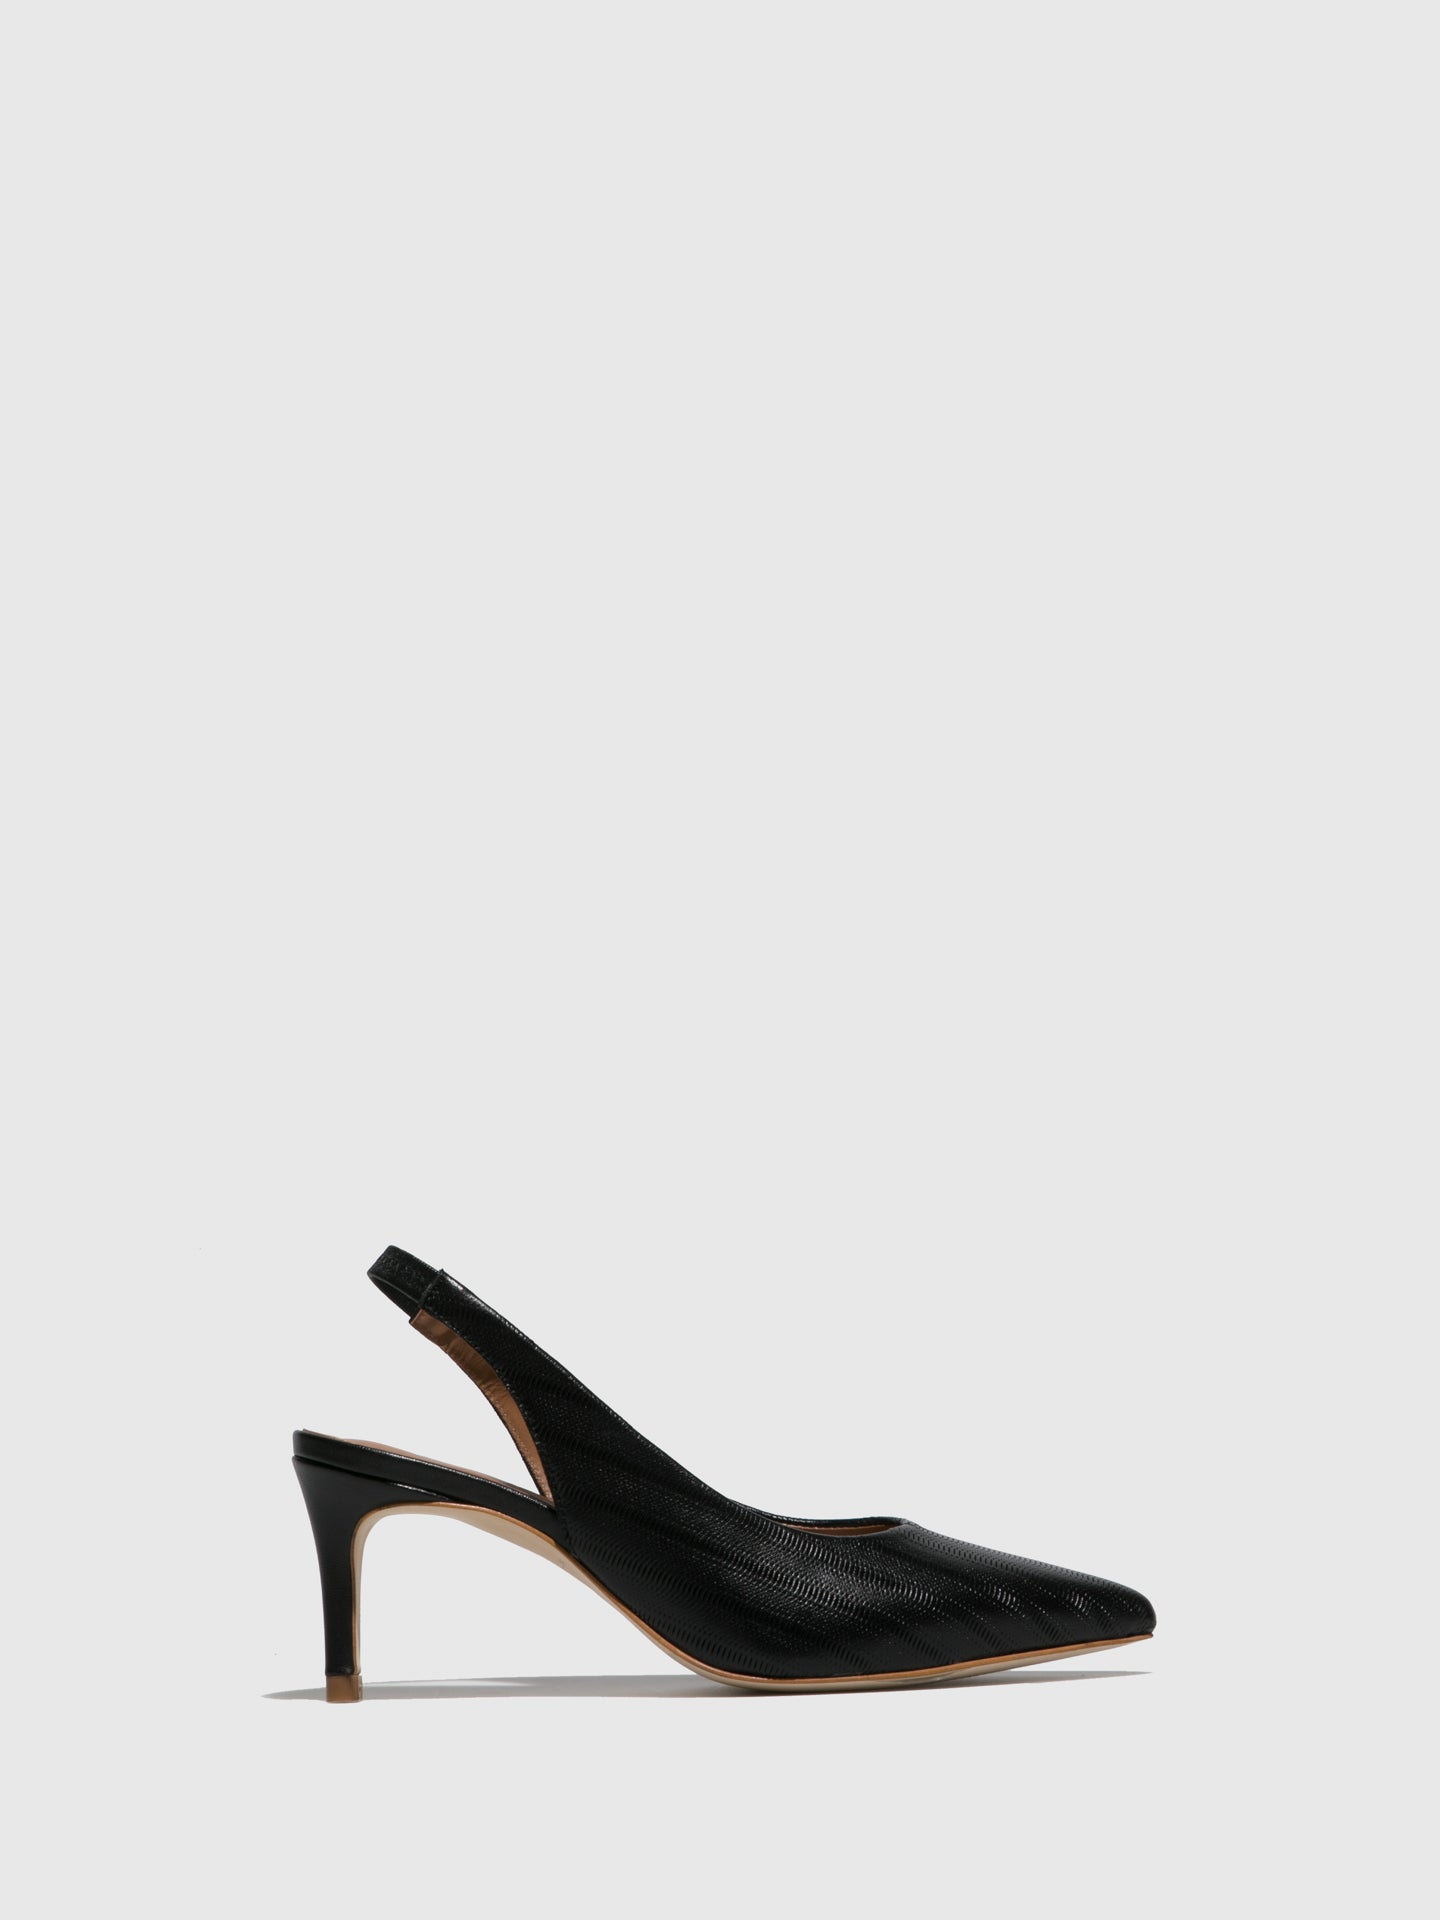 JJ Heitor Black Leather Stiletto Mules